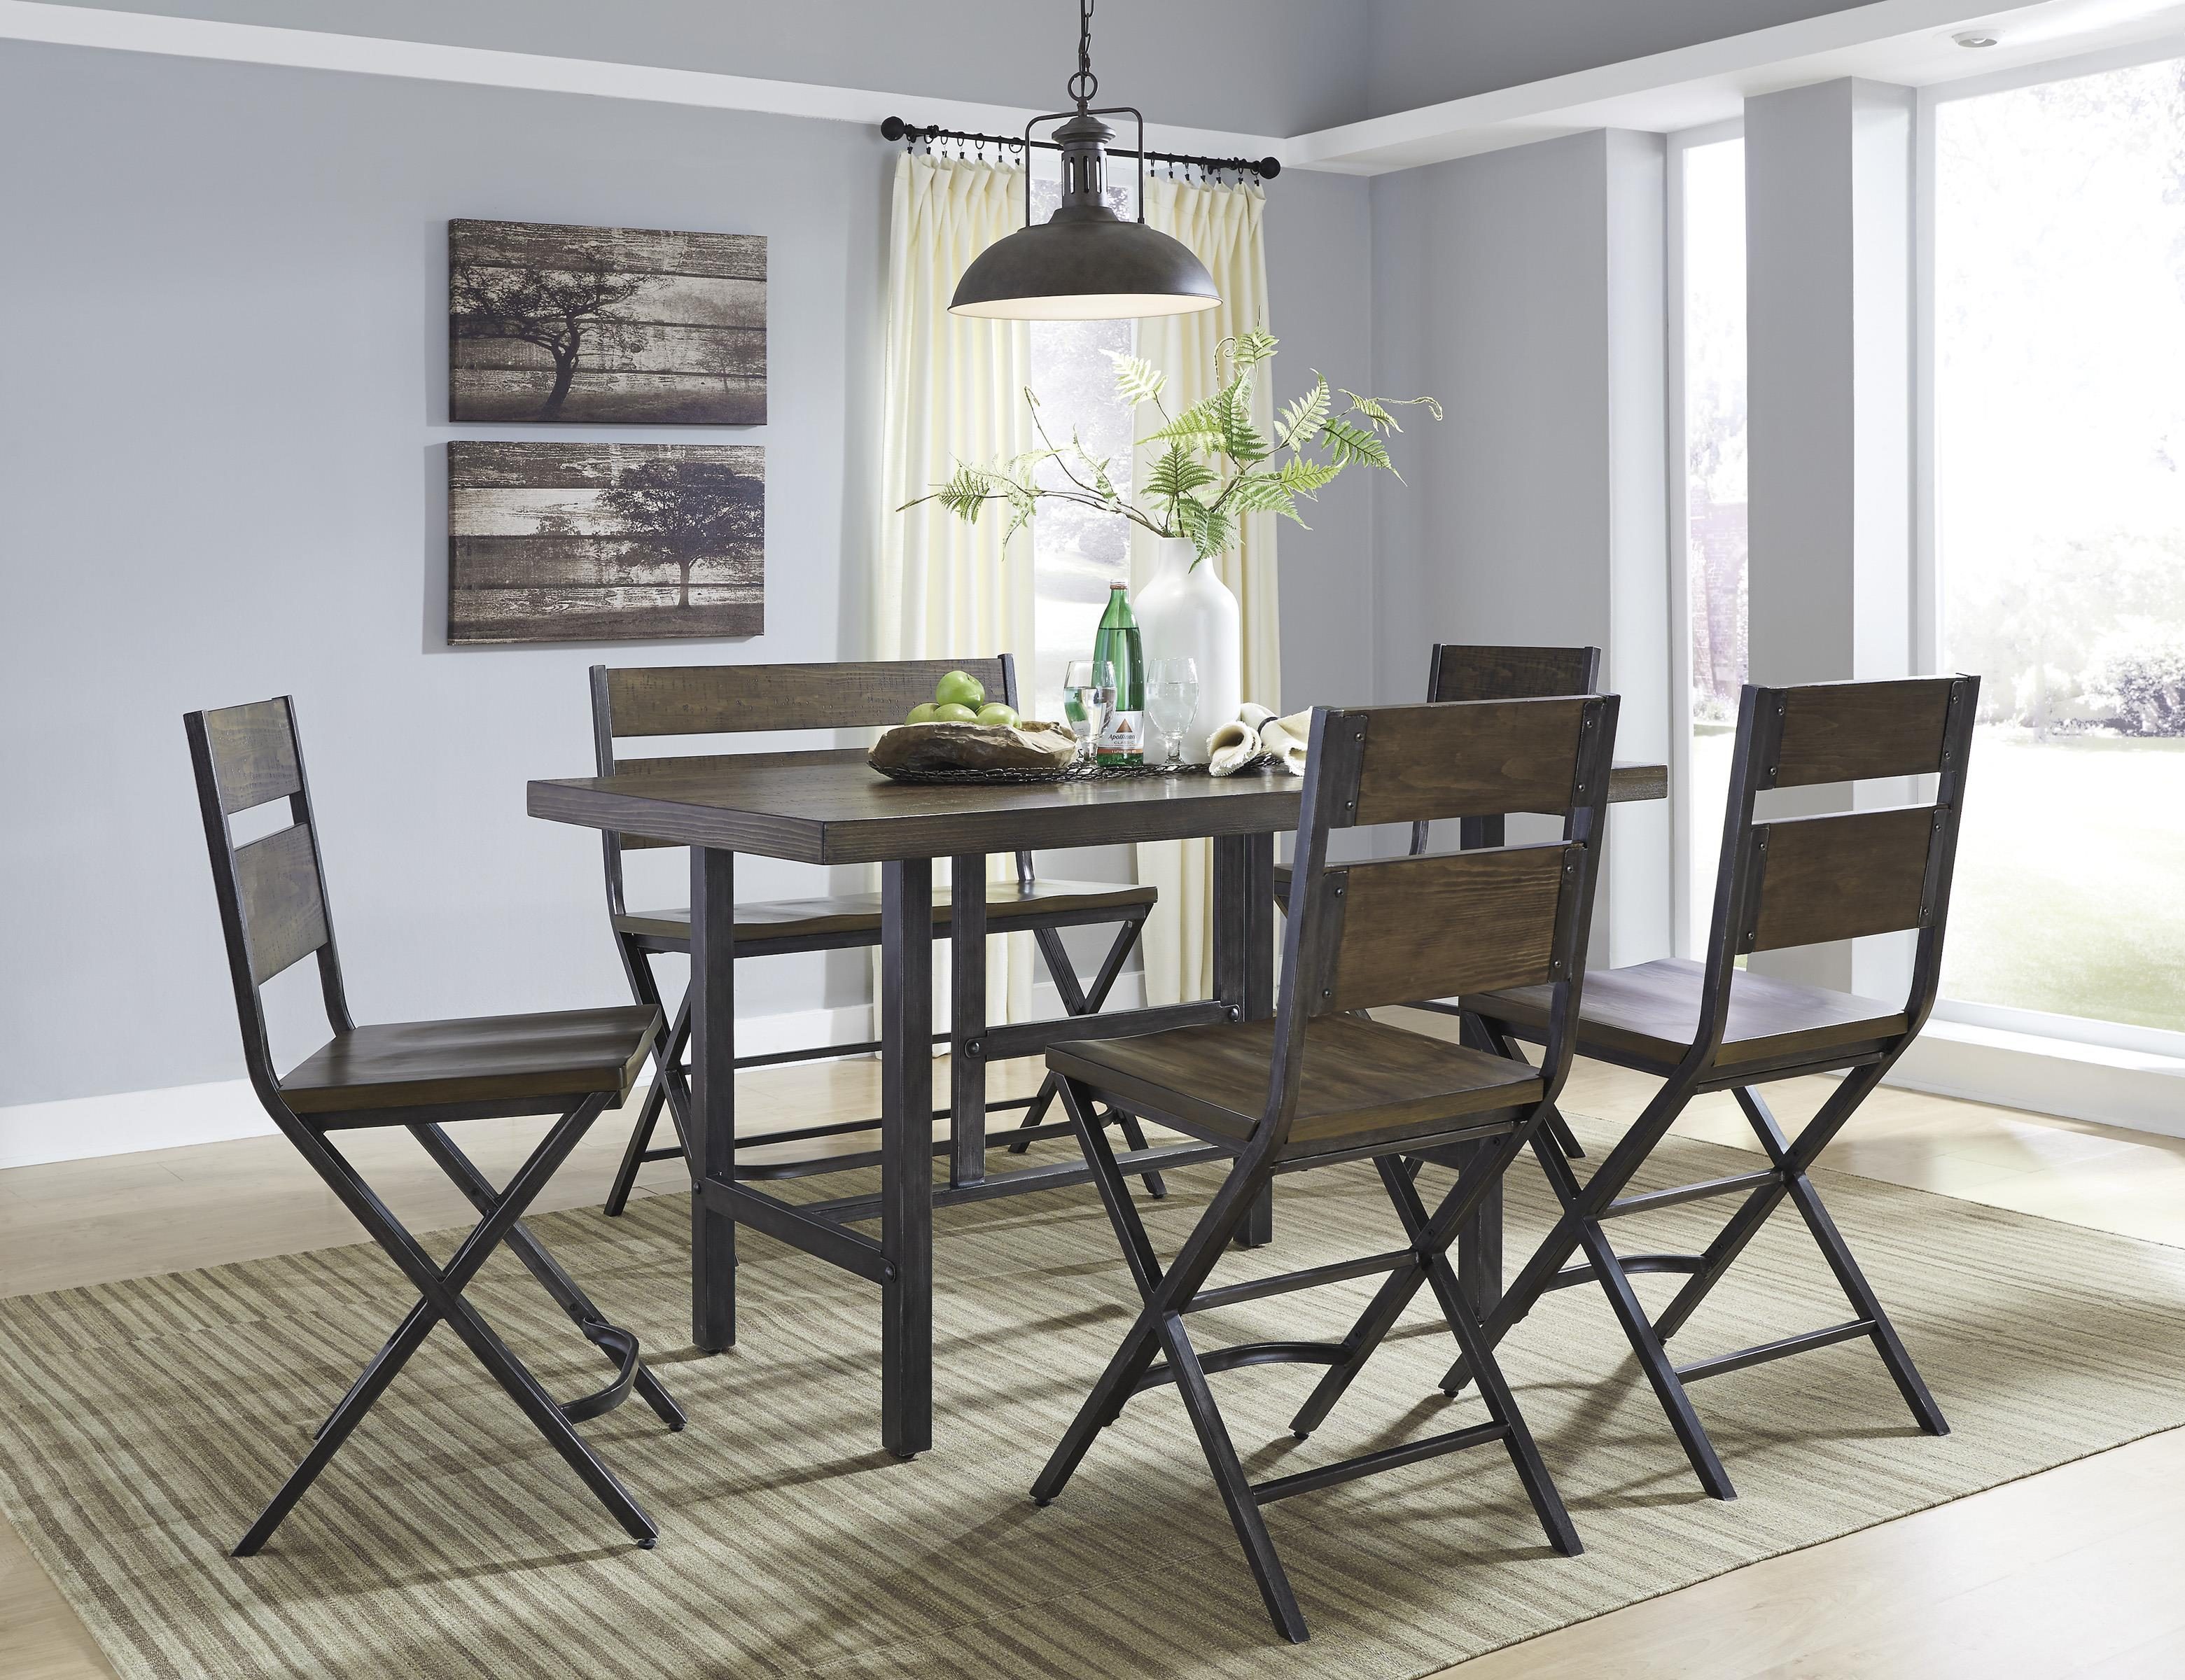 6 Piece Rectangular Dining Room Counter Table W Pine